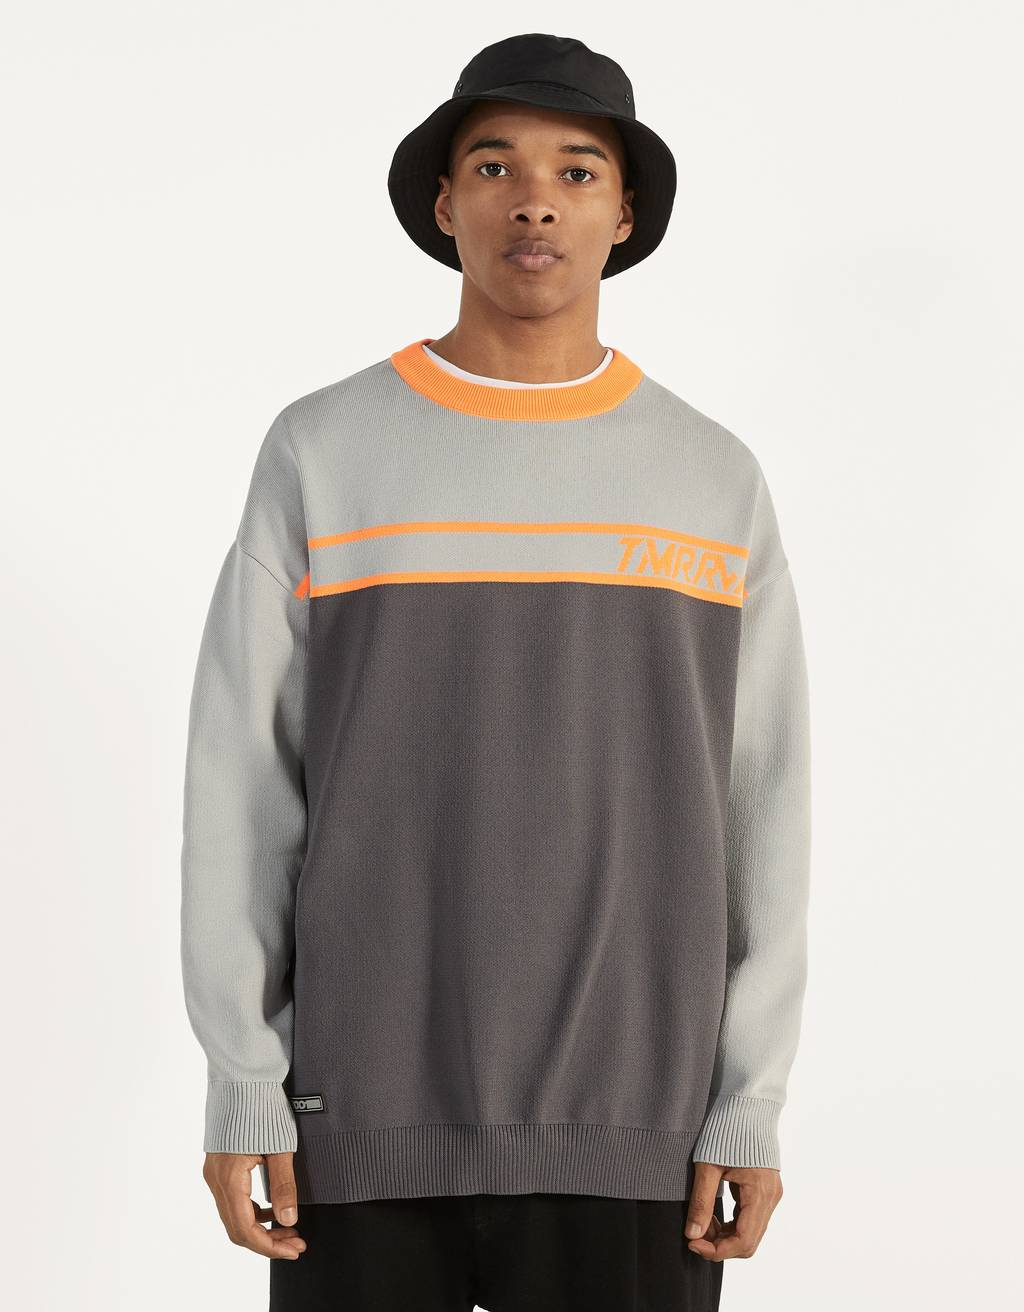 Two-tone technical sweater